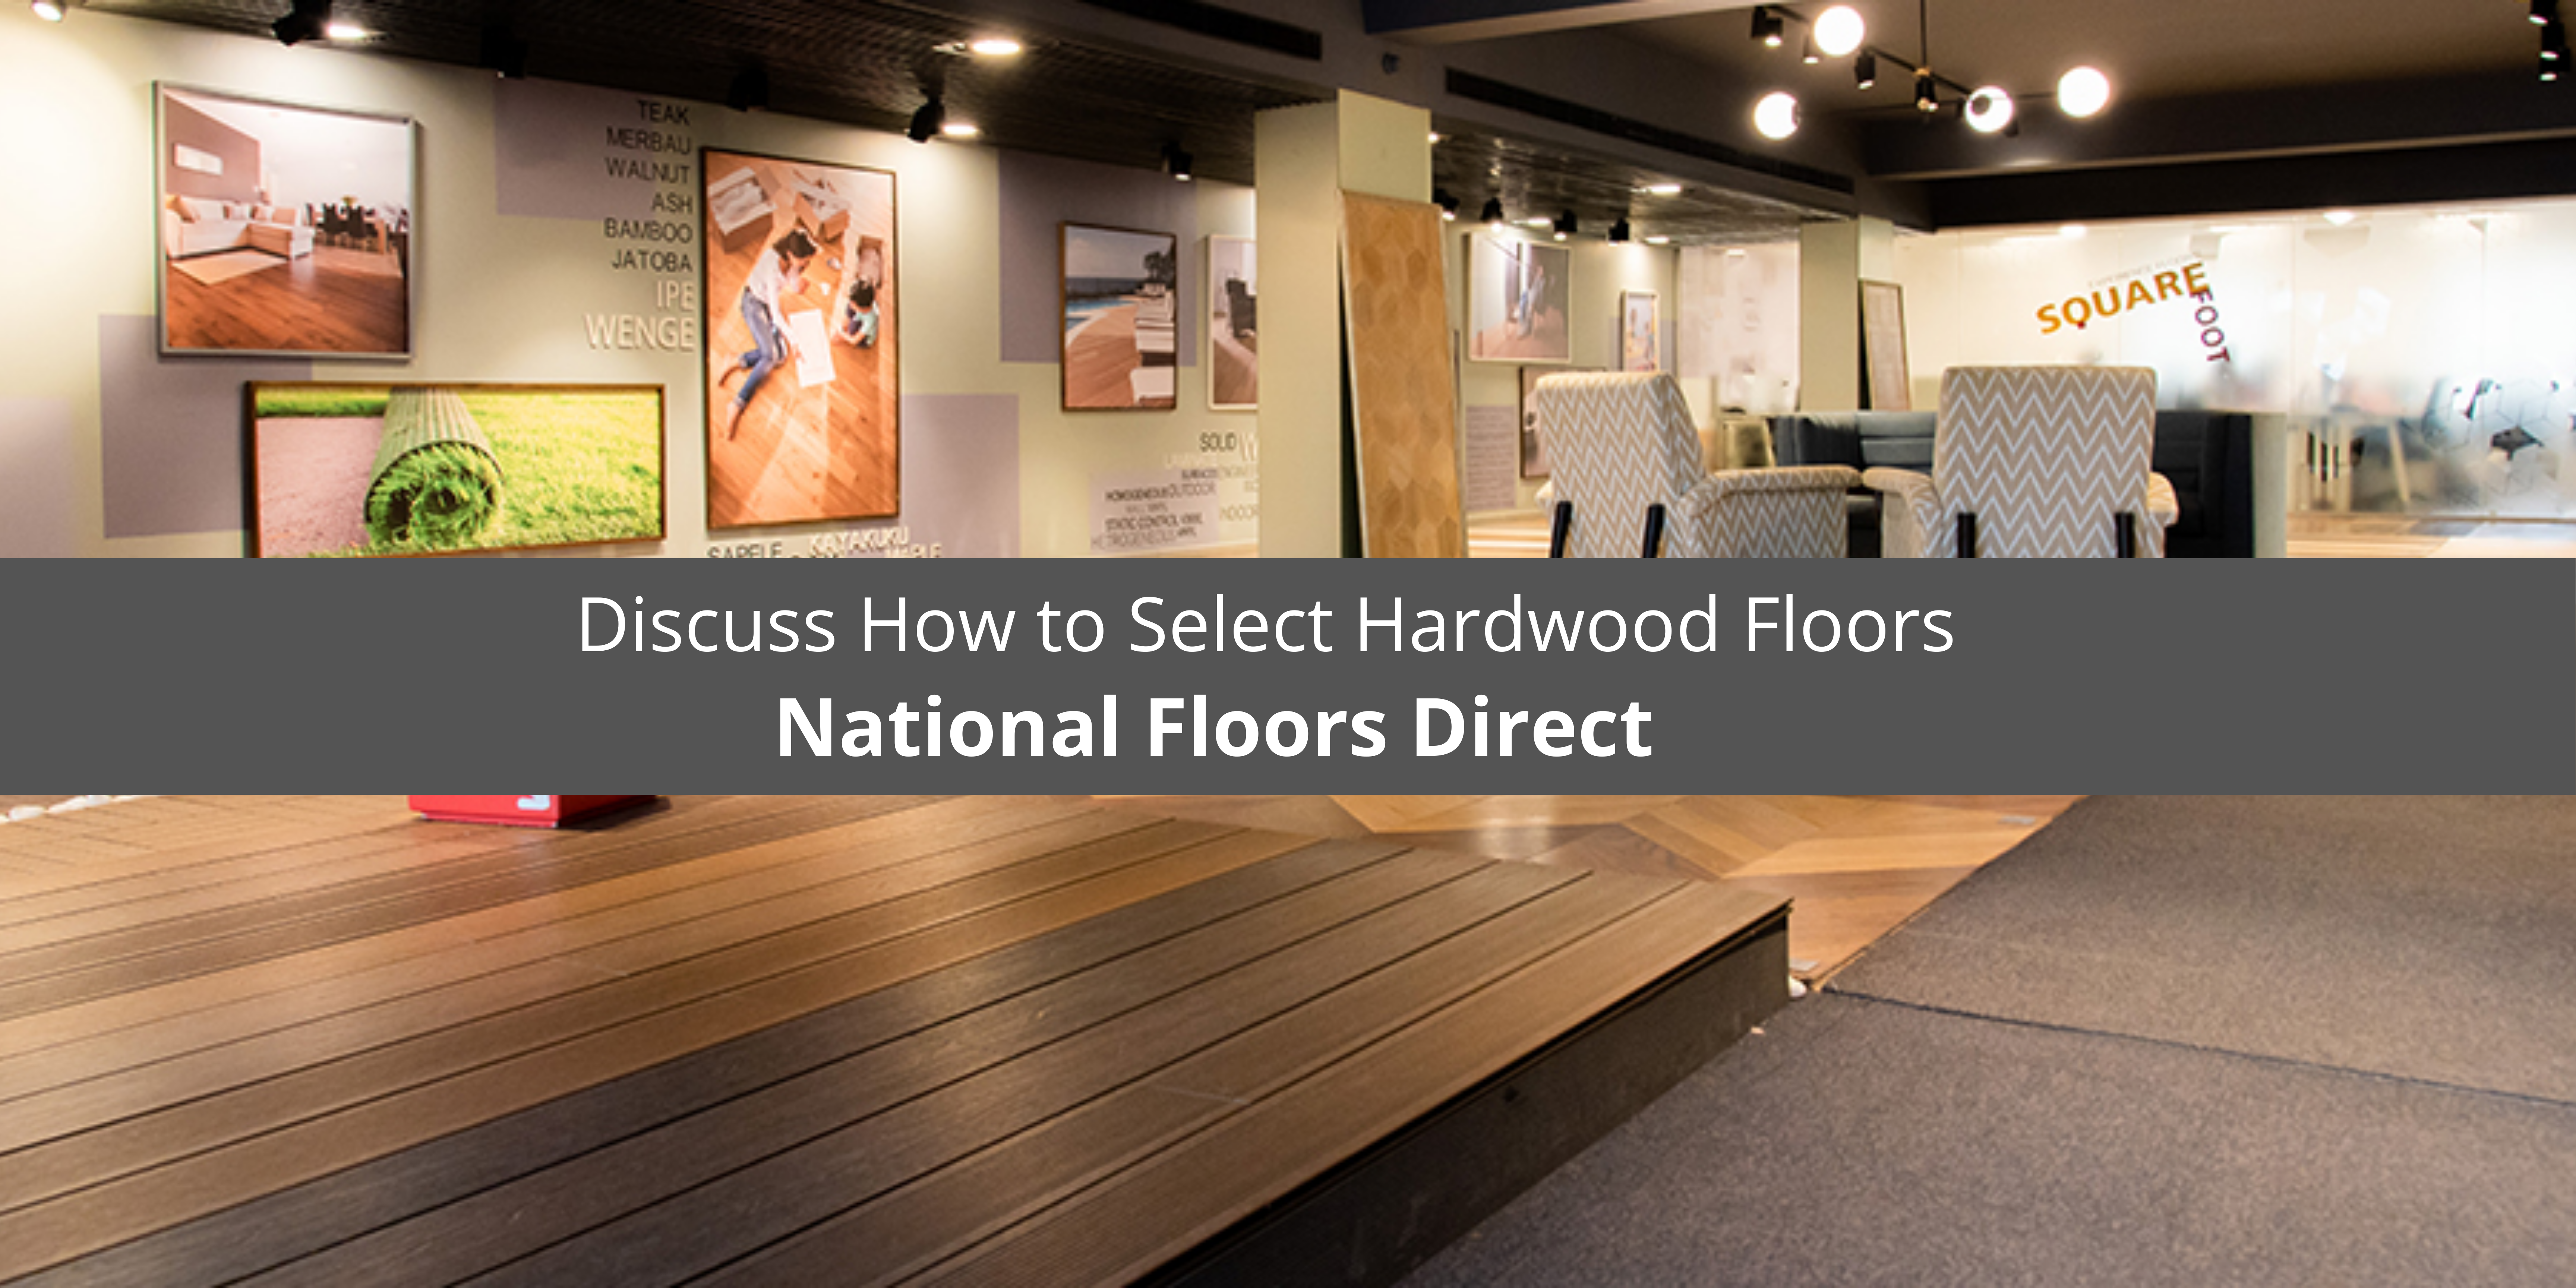 National Floors Direct Reviews Discuss How to Select Hardwood Floors